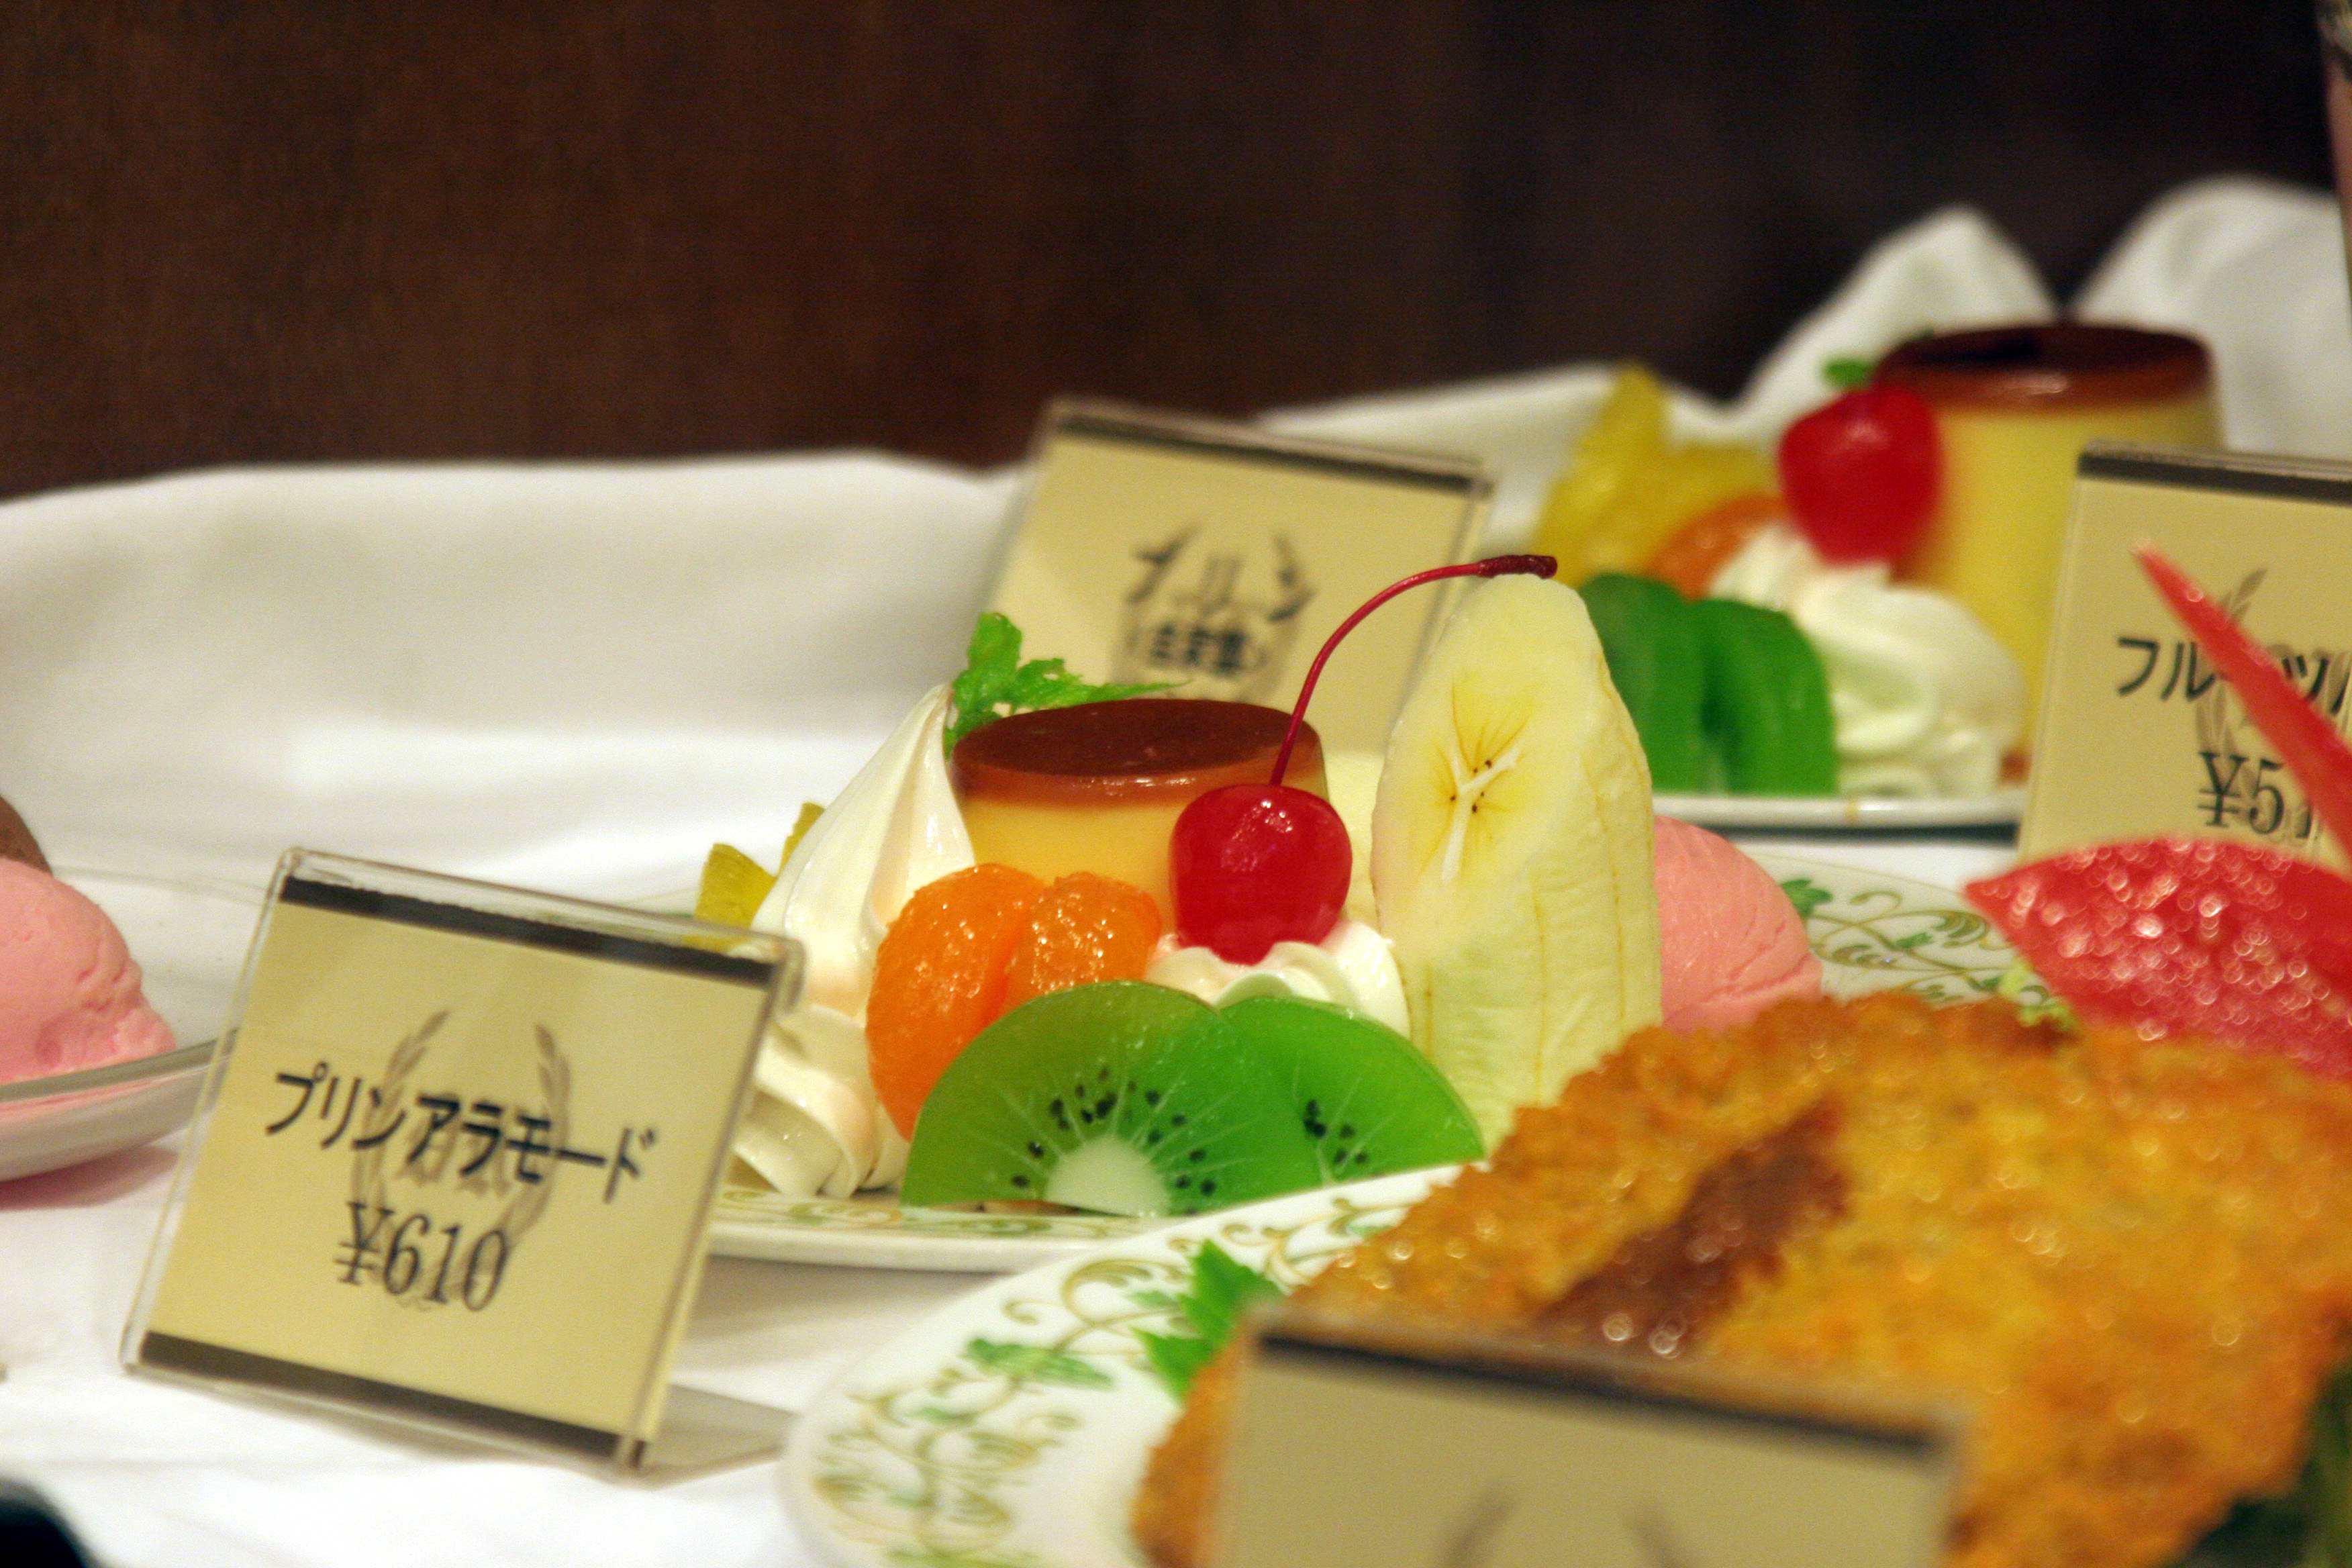 http://upload.wikimedia.org/wikipedia/commons/8/8b/Pudding_sample_by_OiMax_in_Asakusa%2C_Tokyo.jpg